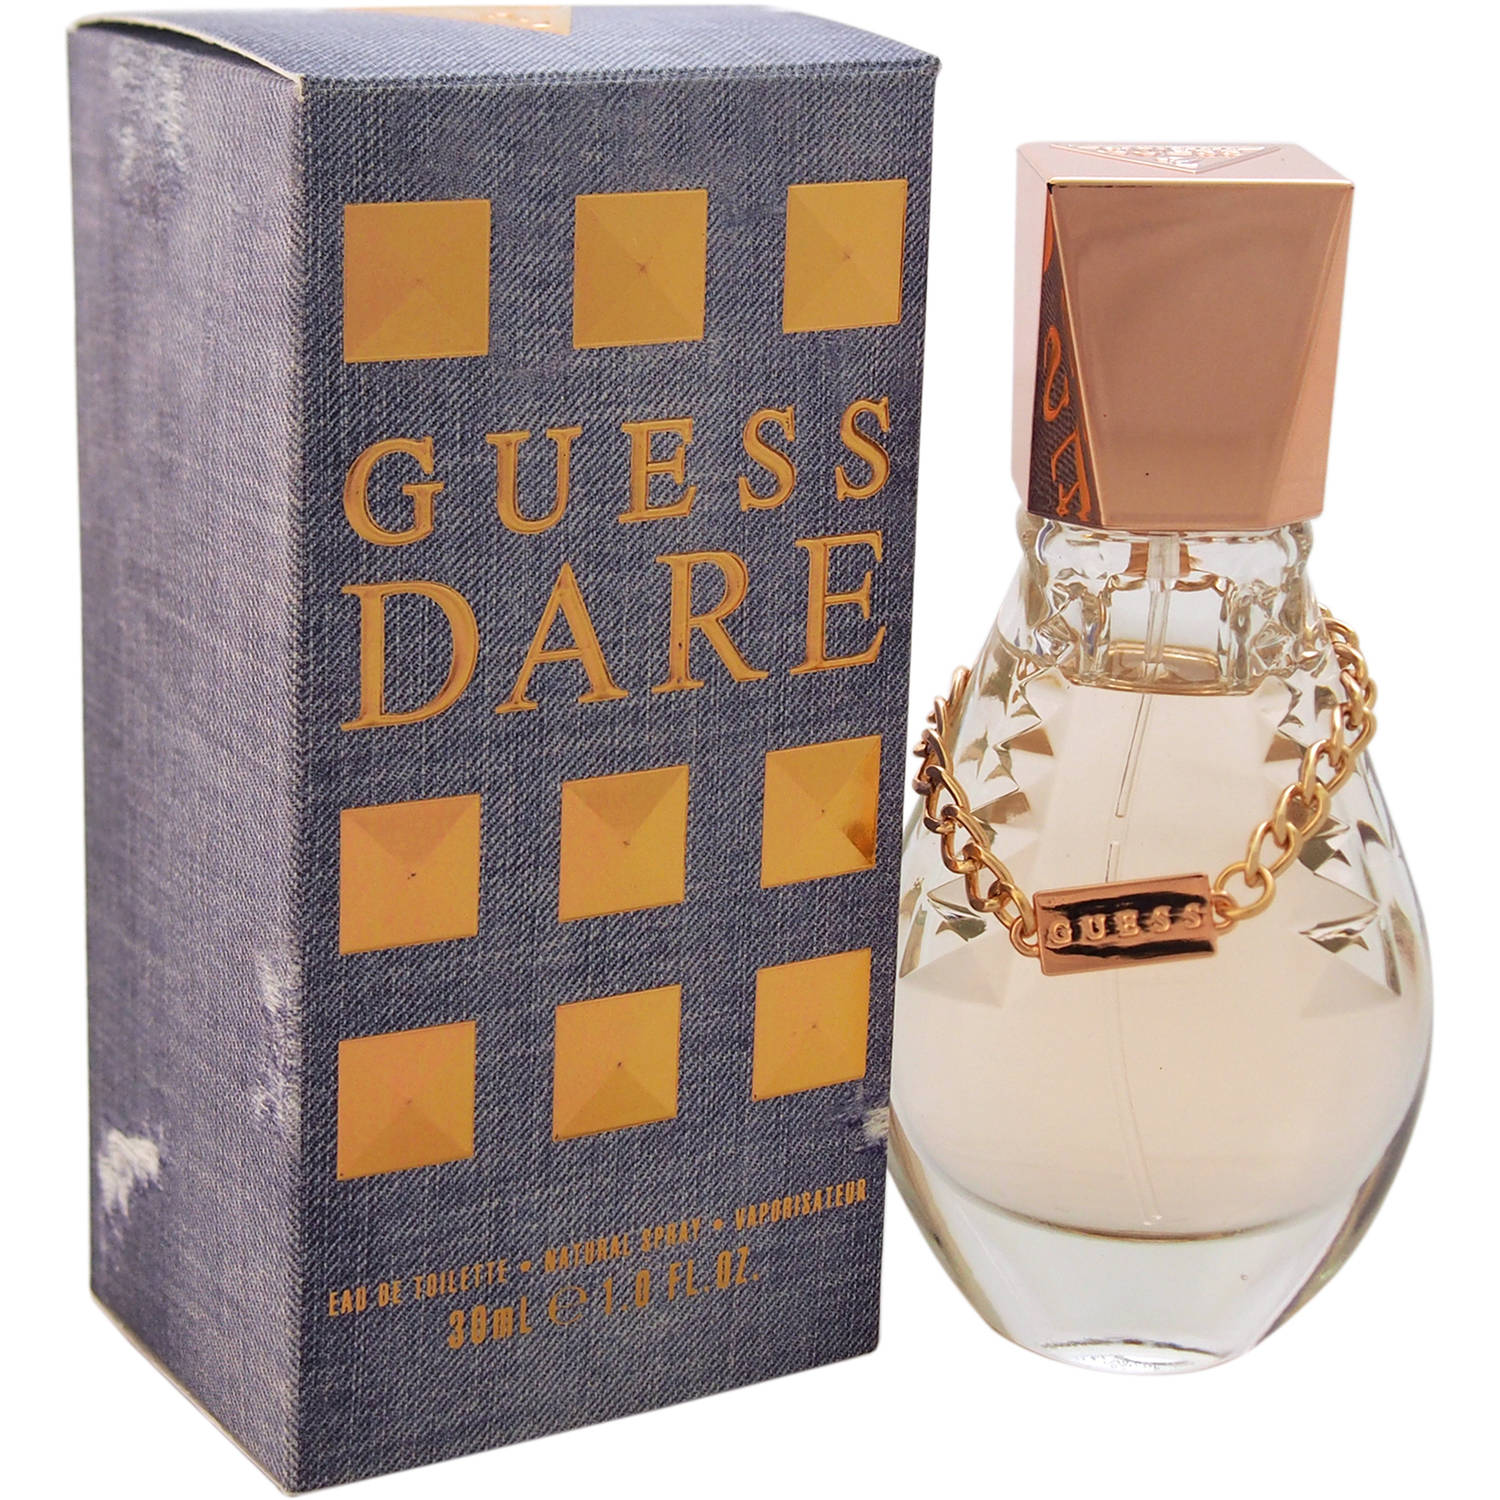 Guess Dare for Women Eau de Toilette Spray, 1 oz